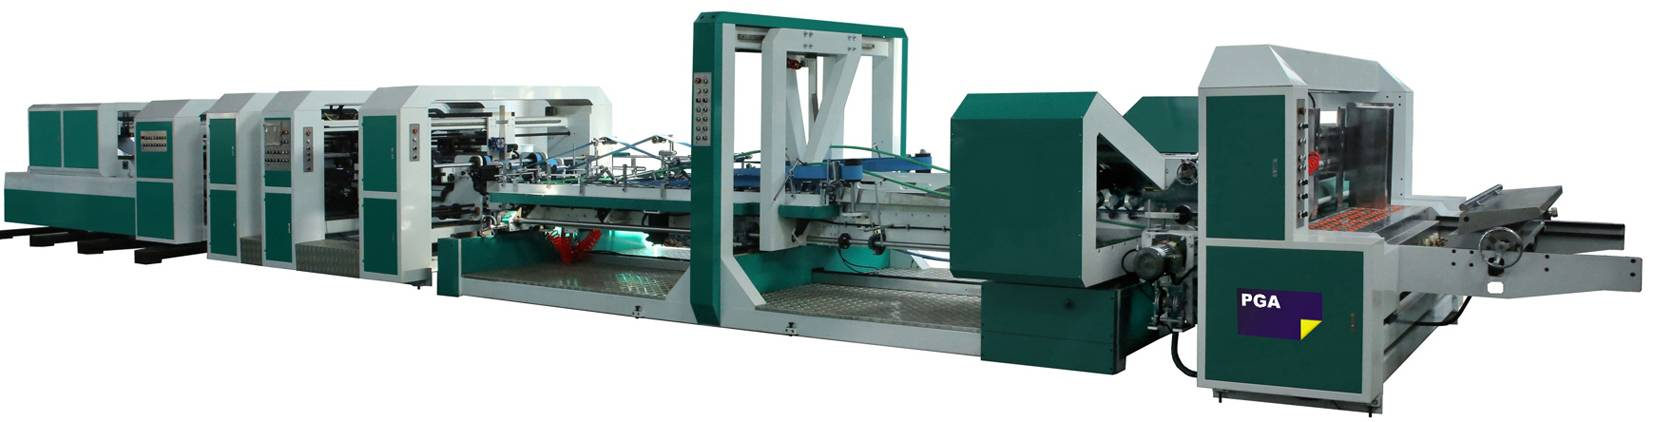 Automatic Folder Gluer Stitcher Machine (JW-2400B)